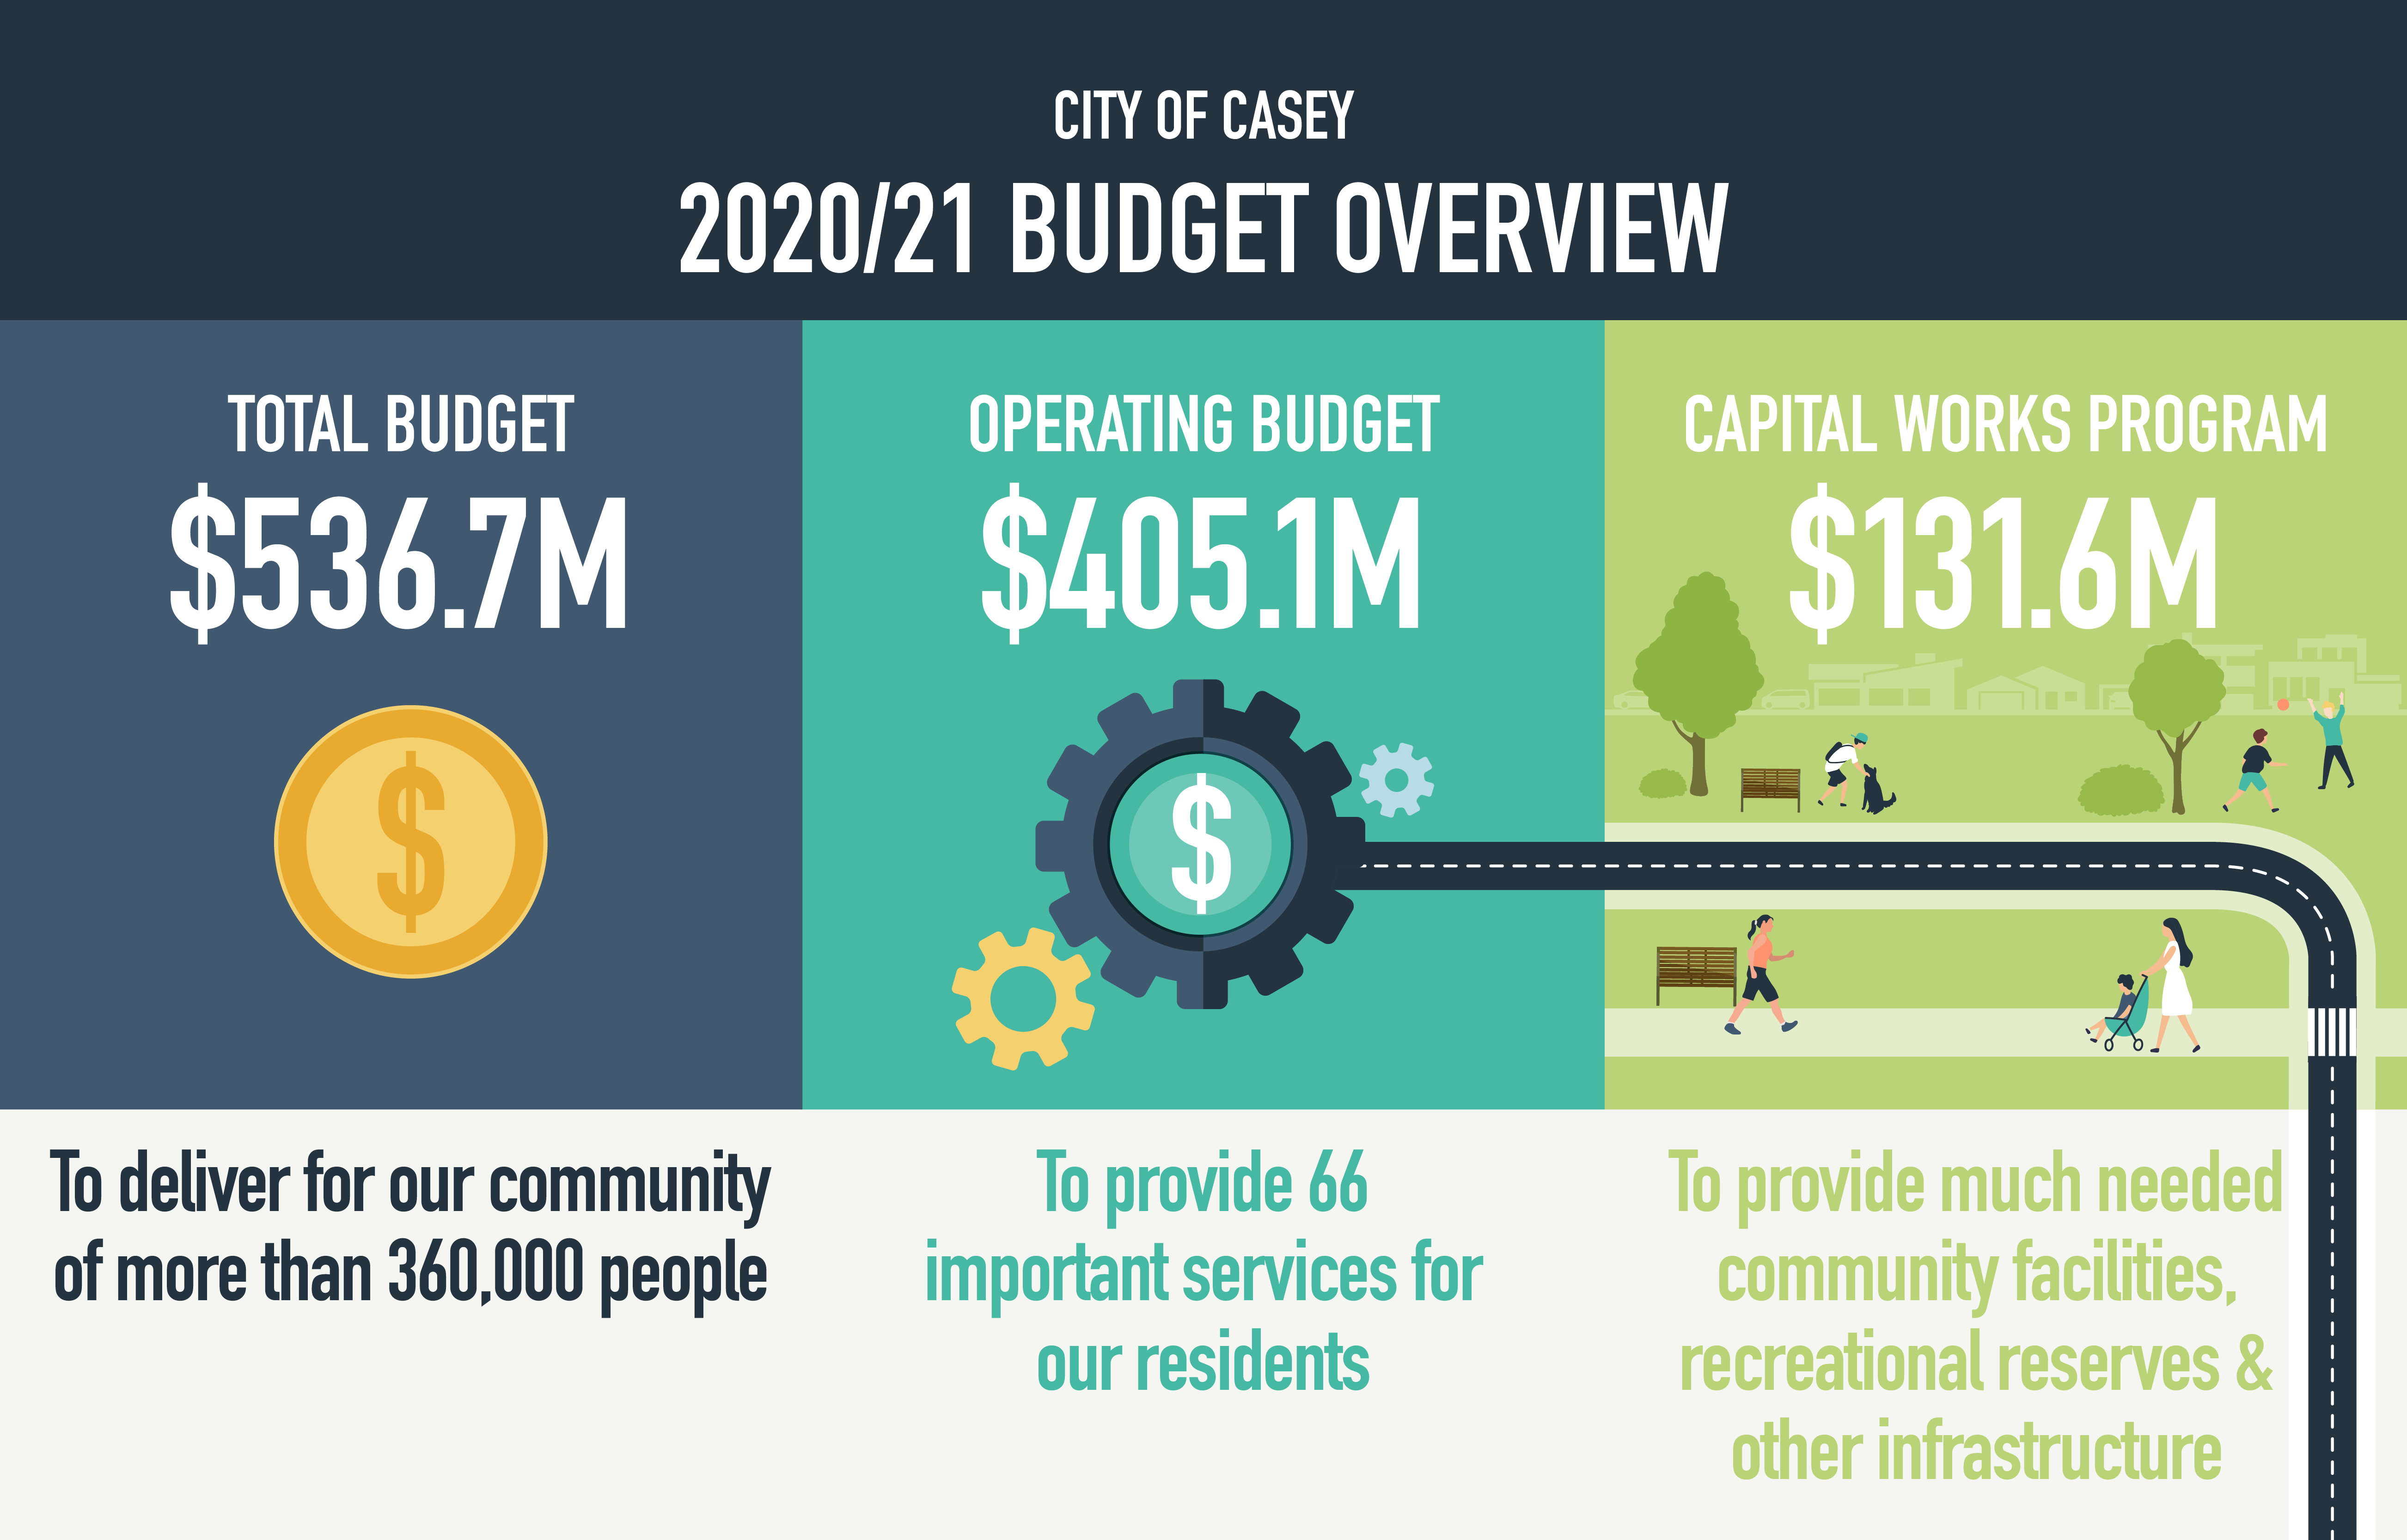 city of casey budget 20-21 highlights